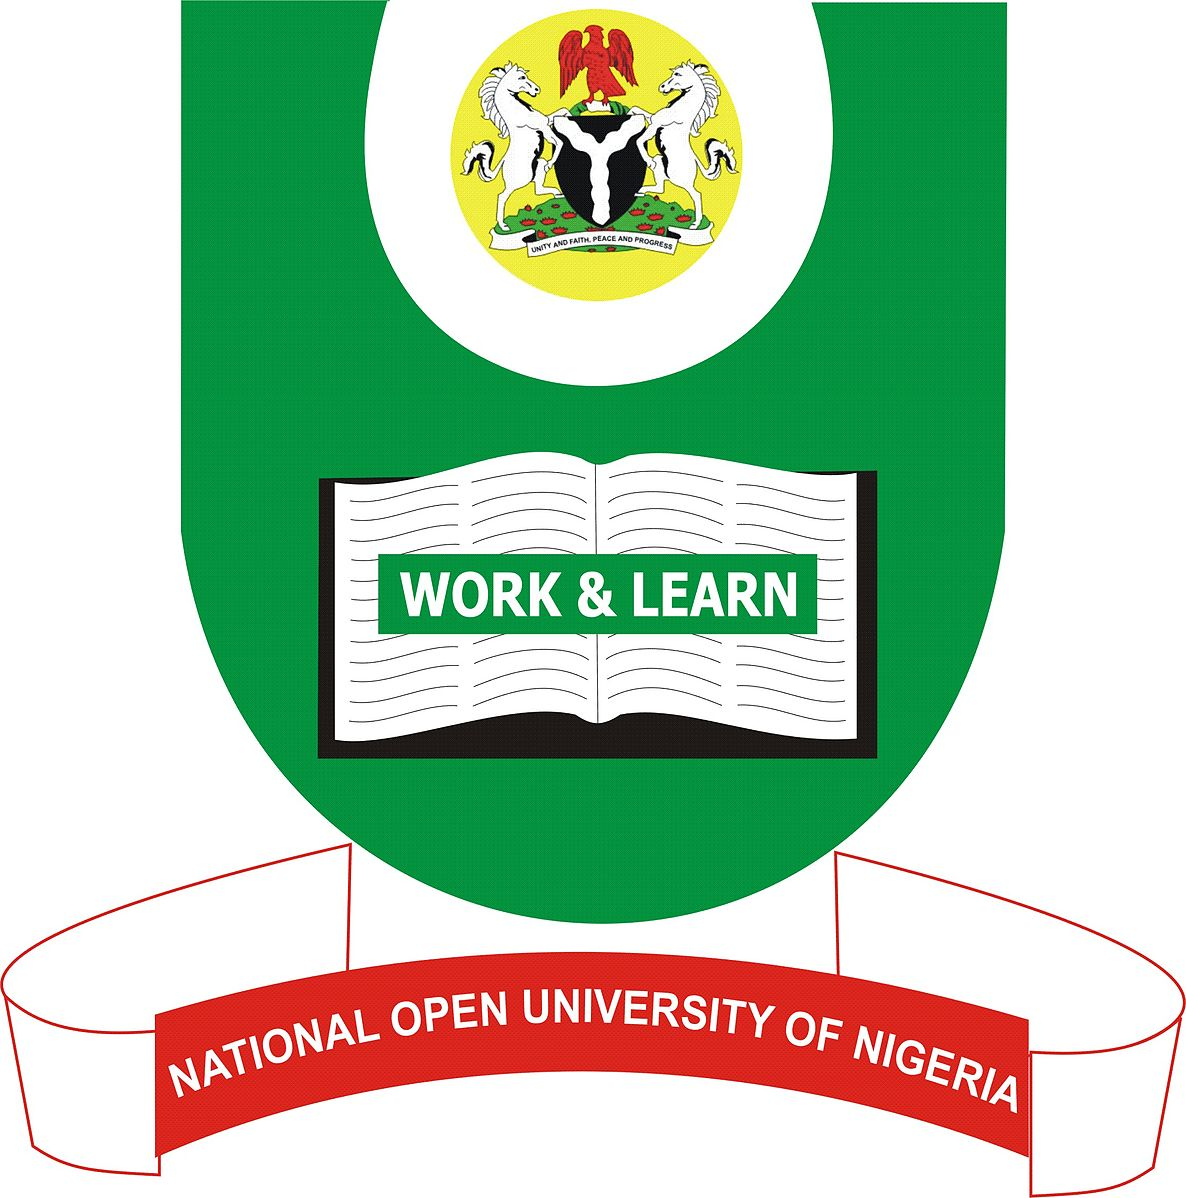 National Open University of Nigeria Logo CC BY-2.0